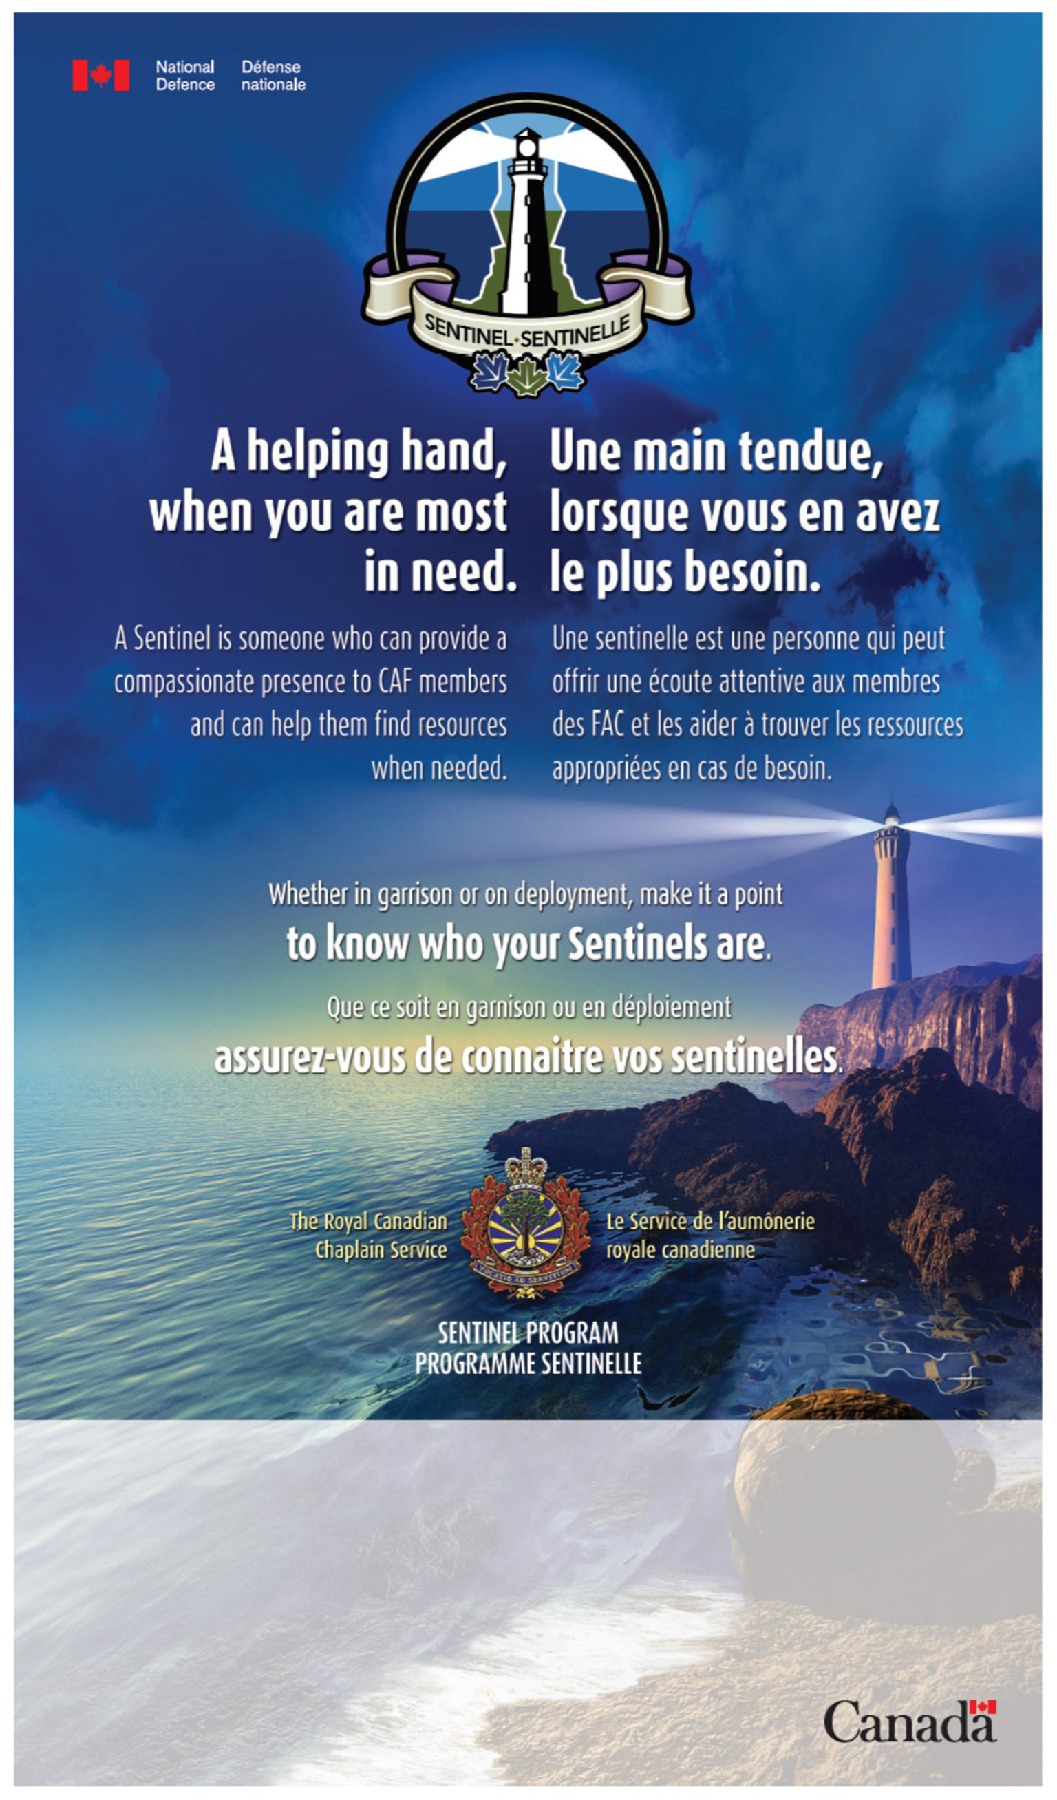 The Sentinel Program poster was developed by Royal Canadian Chaplain Services to help Canadian Armed Forces units identify their Sentinels. Look for this poster at your Wing or Base to learn the contact information of Sentinels in your area. IMAGE: Courtesy of Lieutenant (Navy) David Godkin